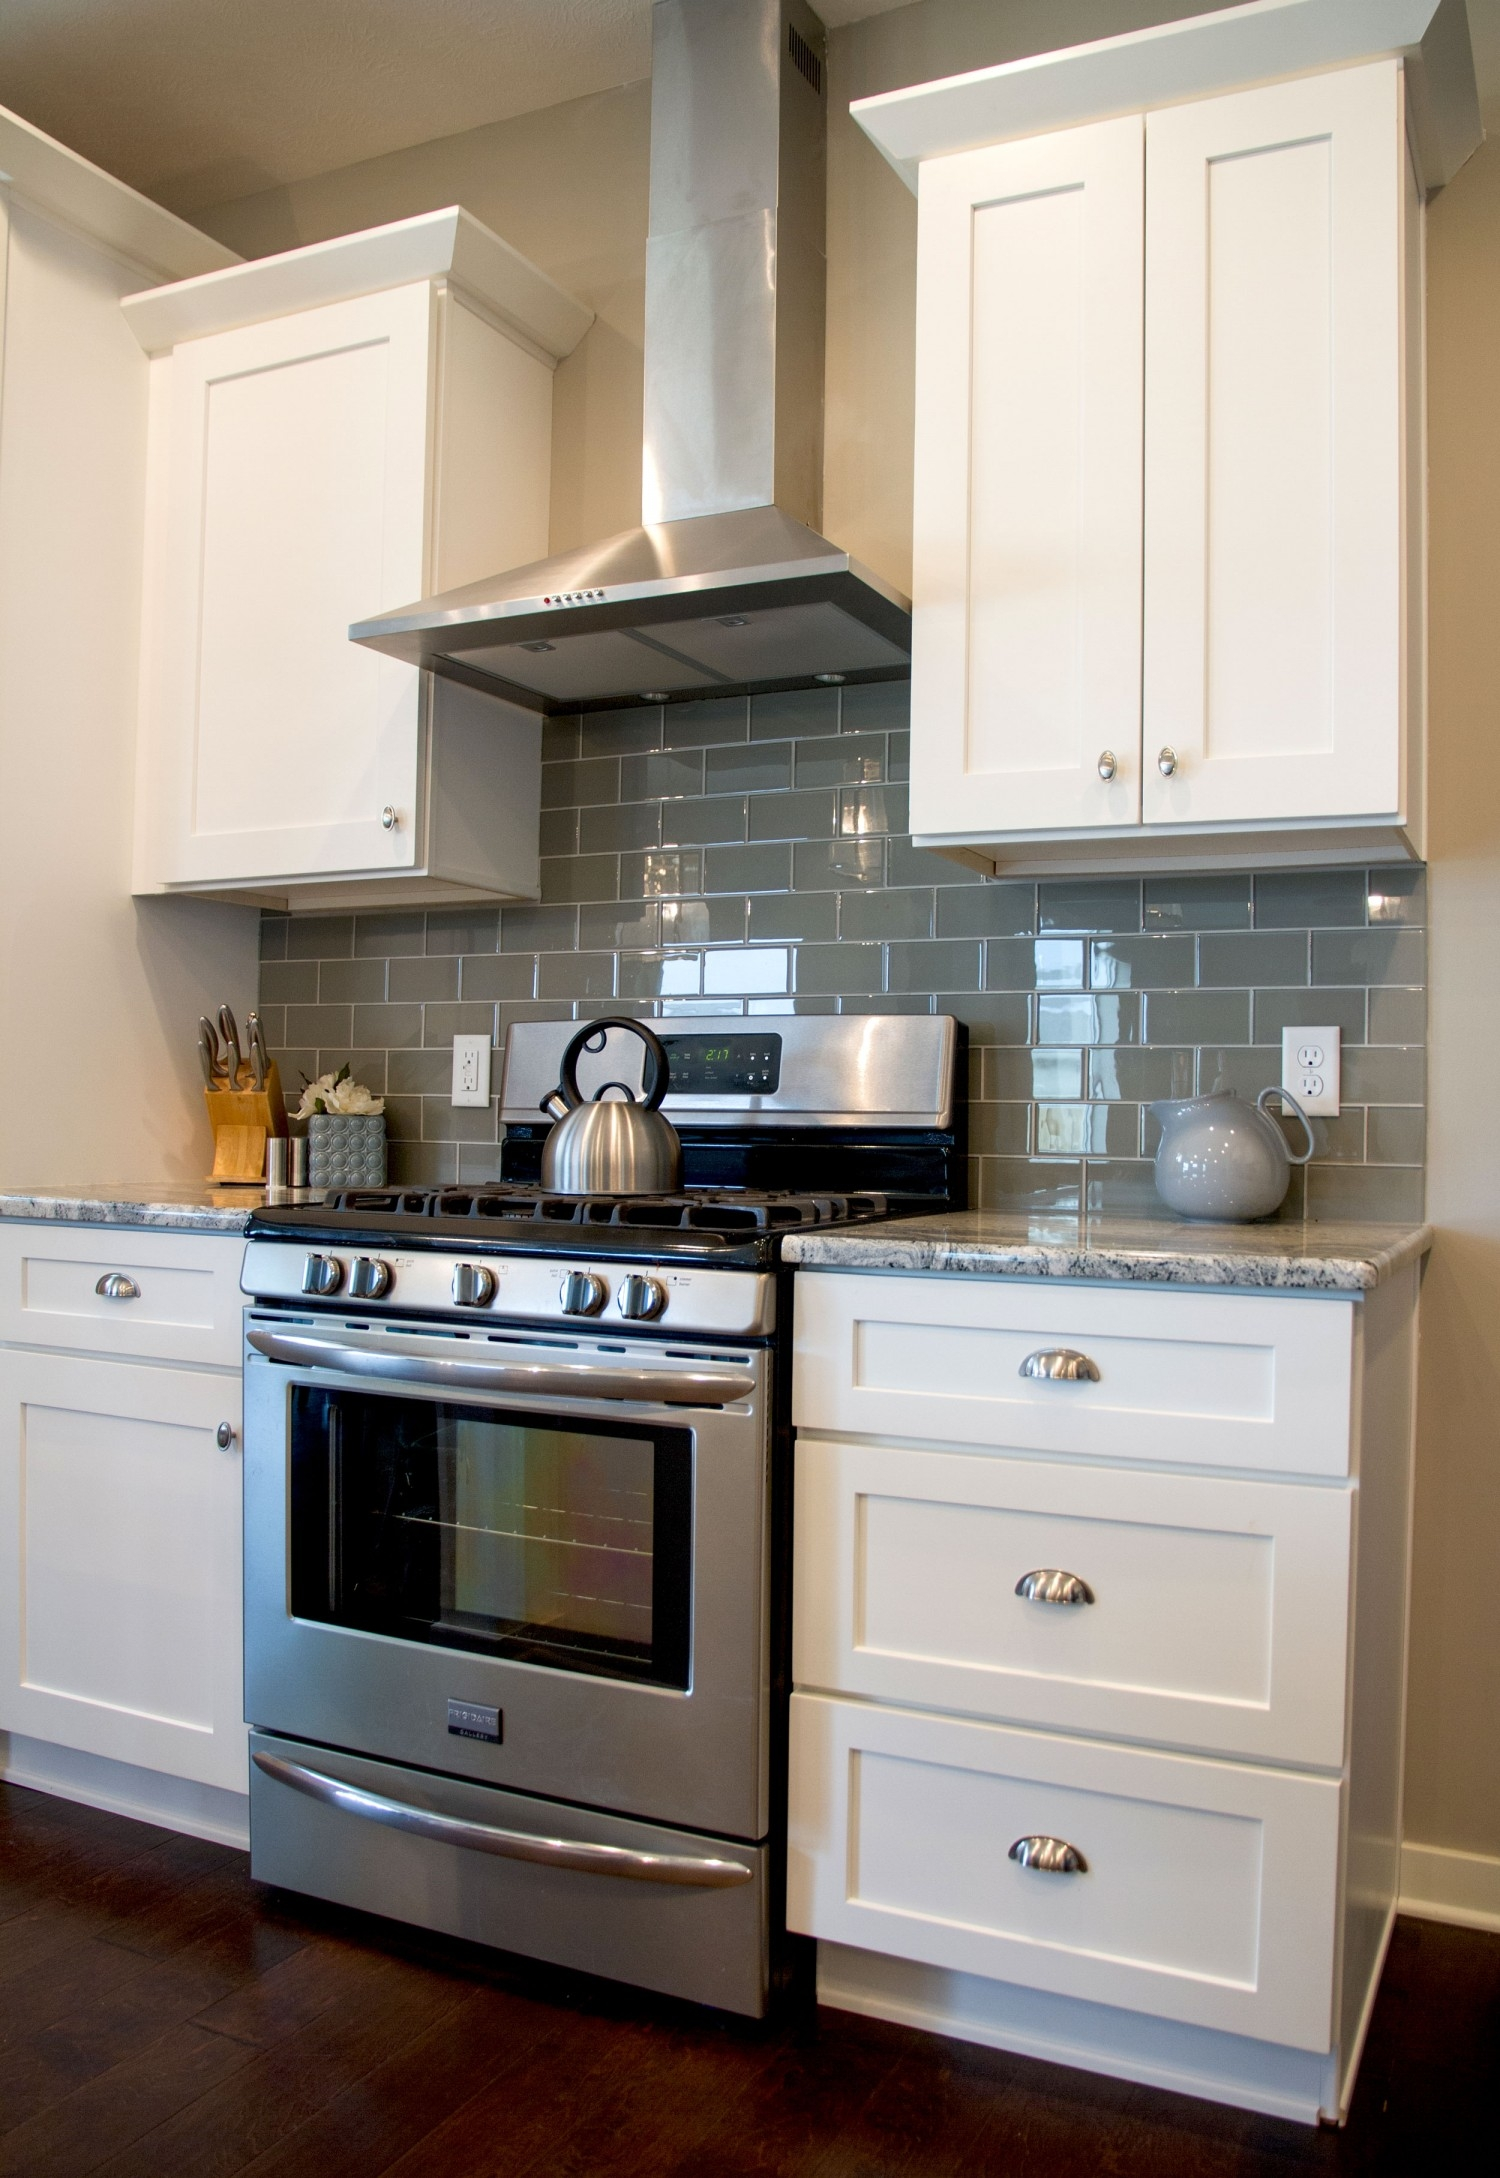 30 Inch White Kitchen Cabinets24 inch full height door base cabinet in shaker espresso with 2